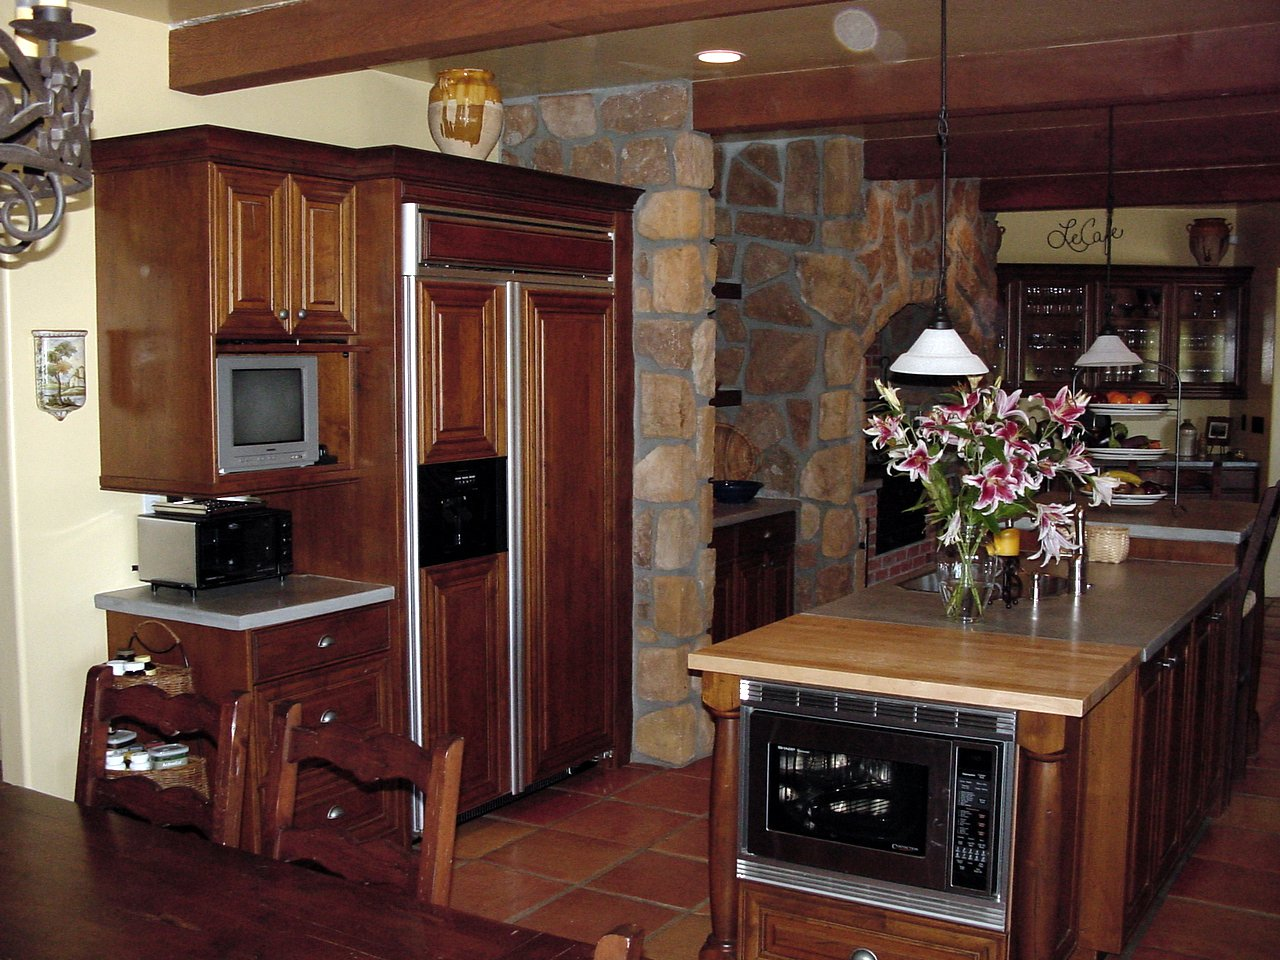 Rustic Alder Kitchen Cabinetry